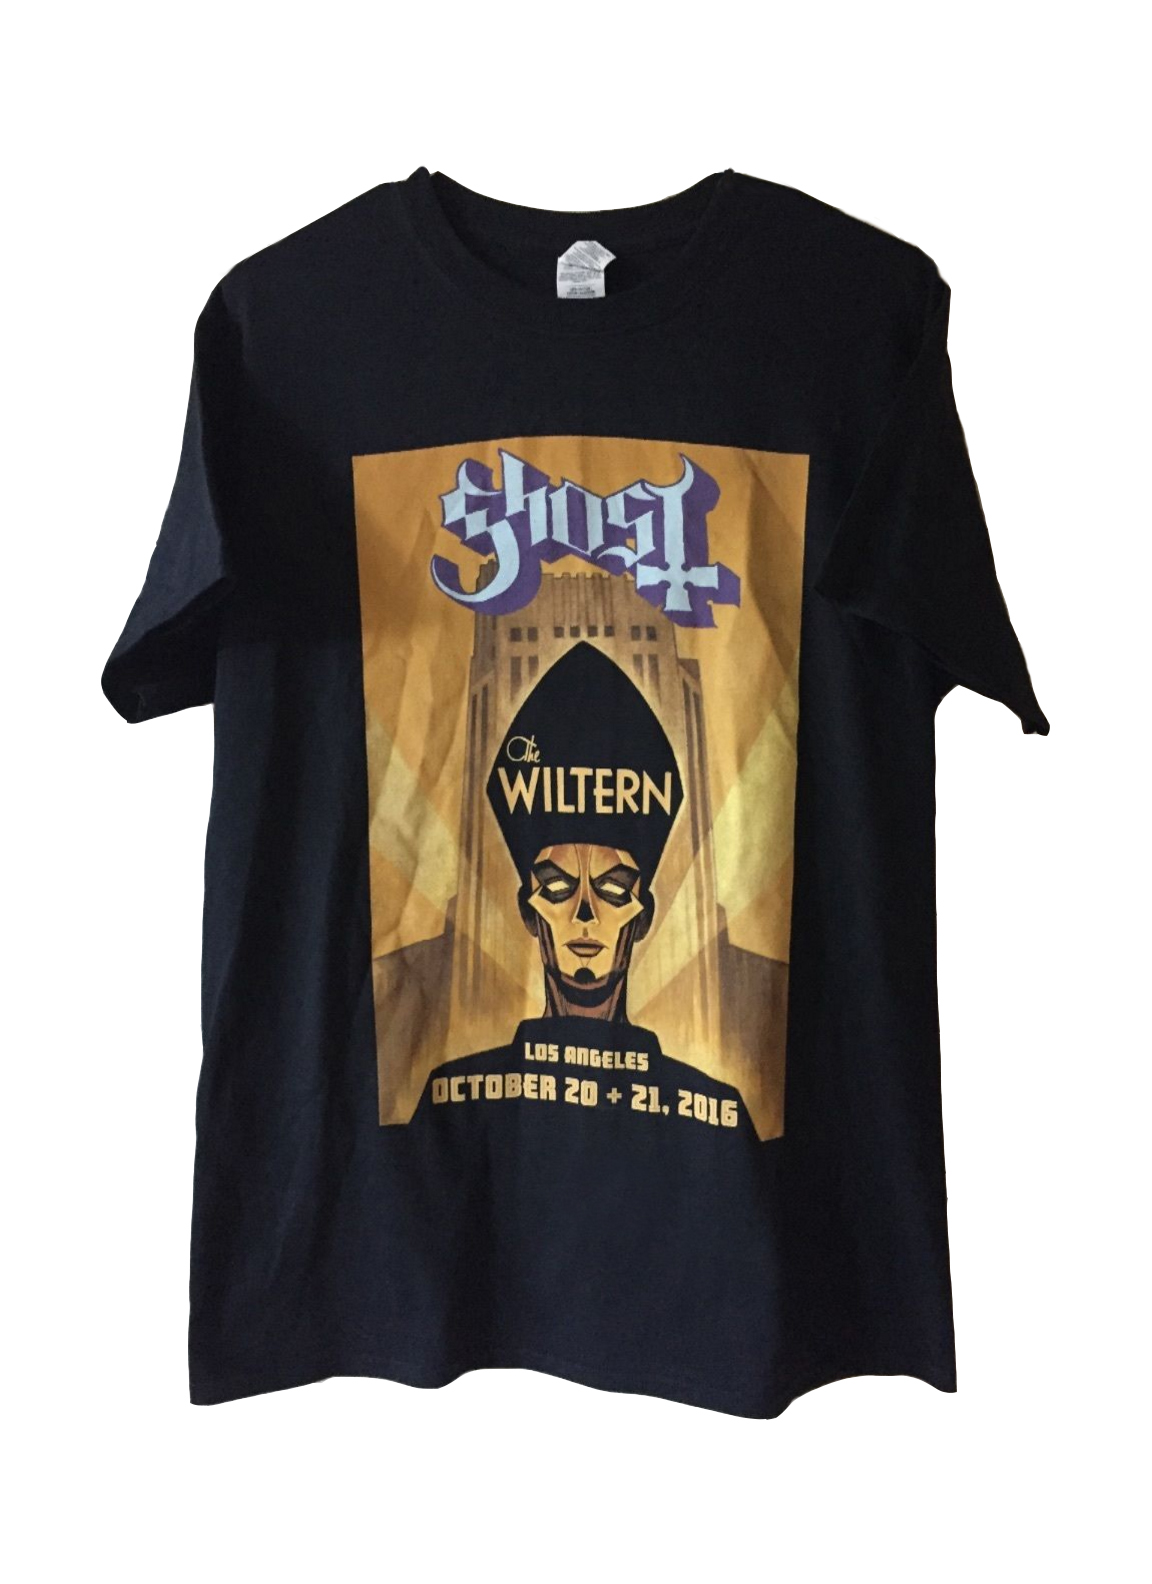 GHOST | The Popestar Tour 2016    Official limited edition 'The Wiltern' t-shirt    Acrylic on paper and digital